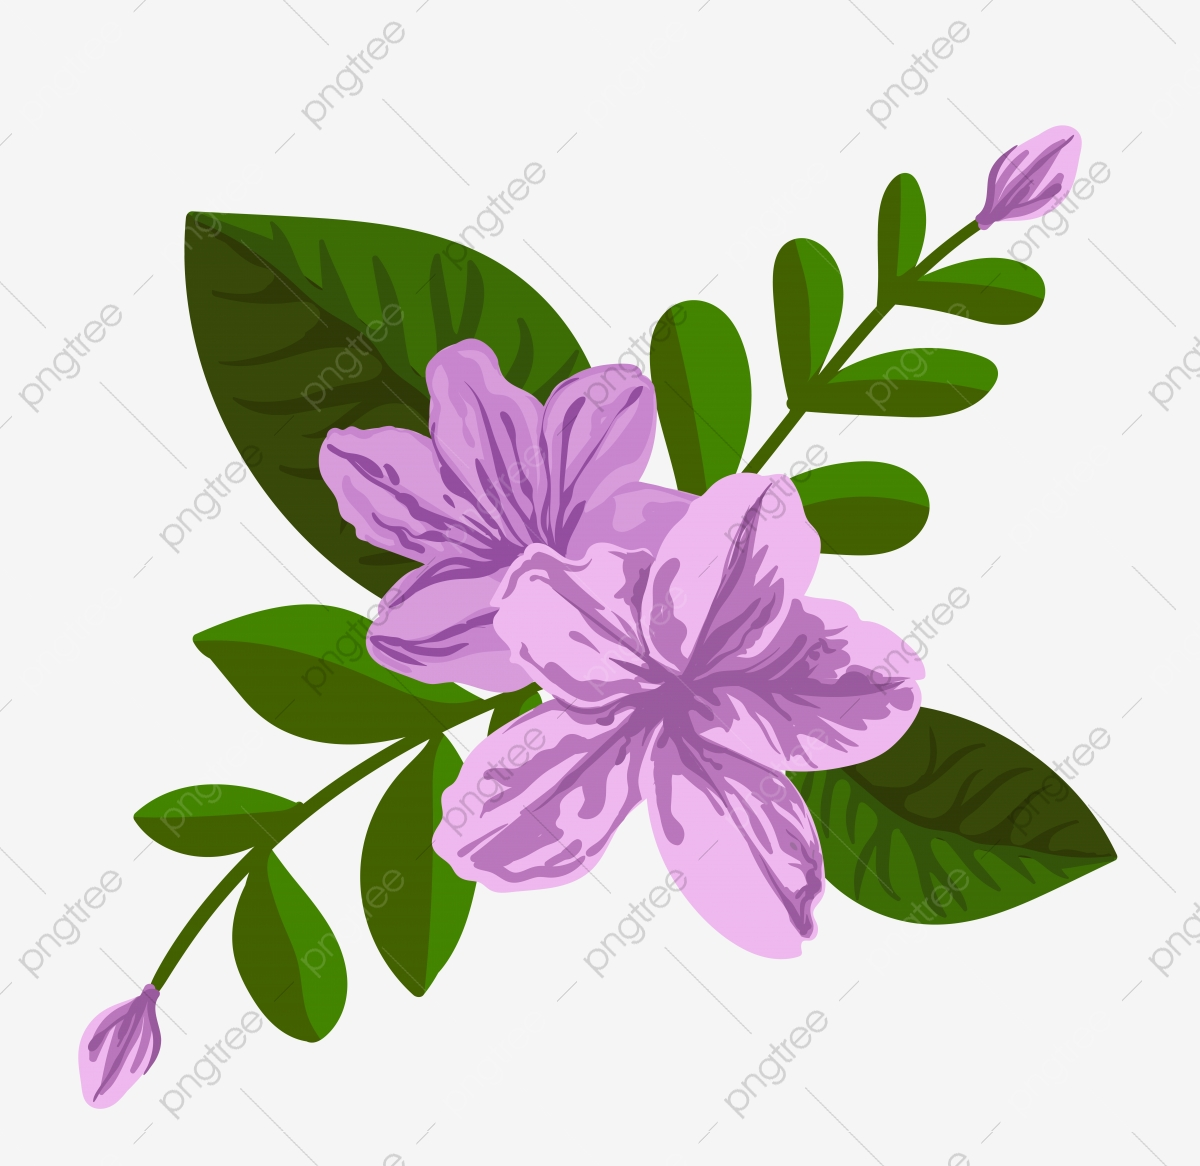 Purple Vector Flower Illustration Tropical Blossom Aloha Artistic Background Png And Vector With Transparent Background For Free Download